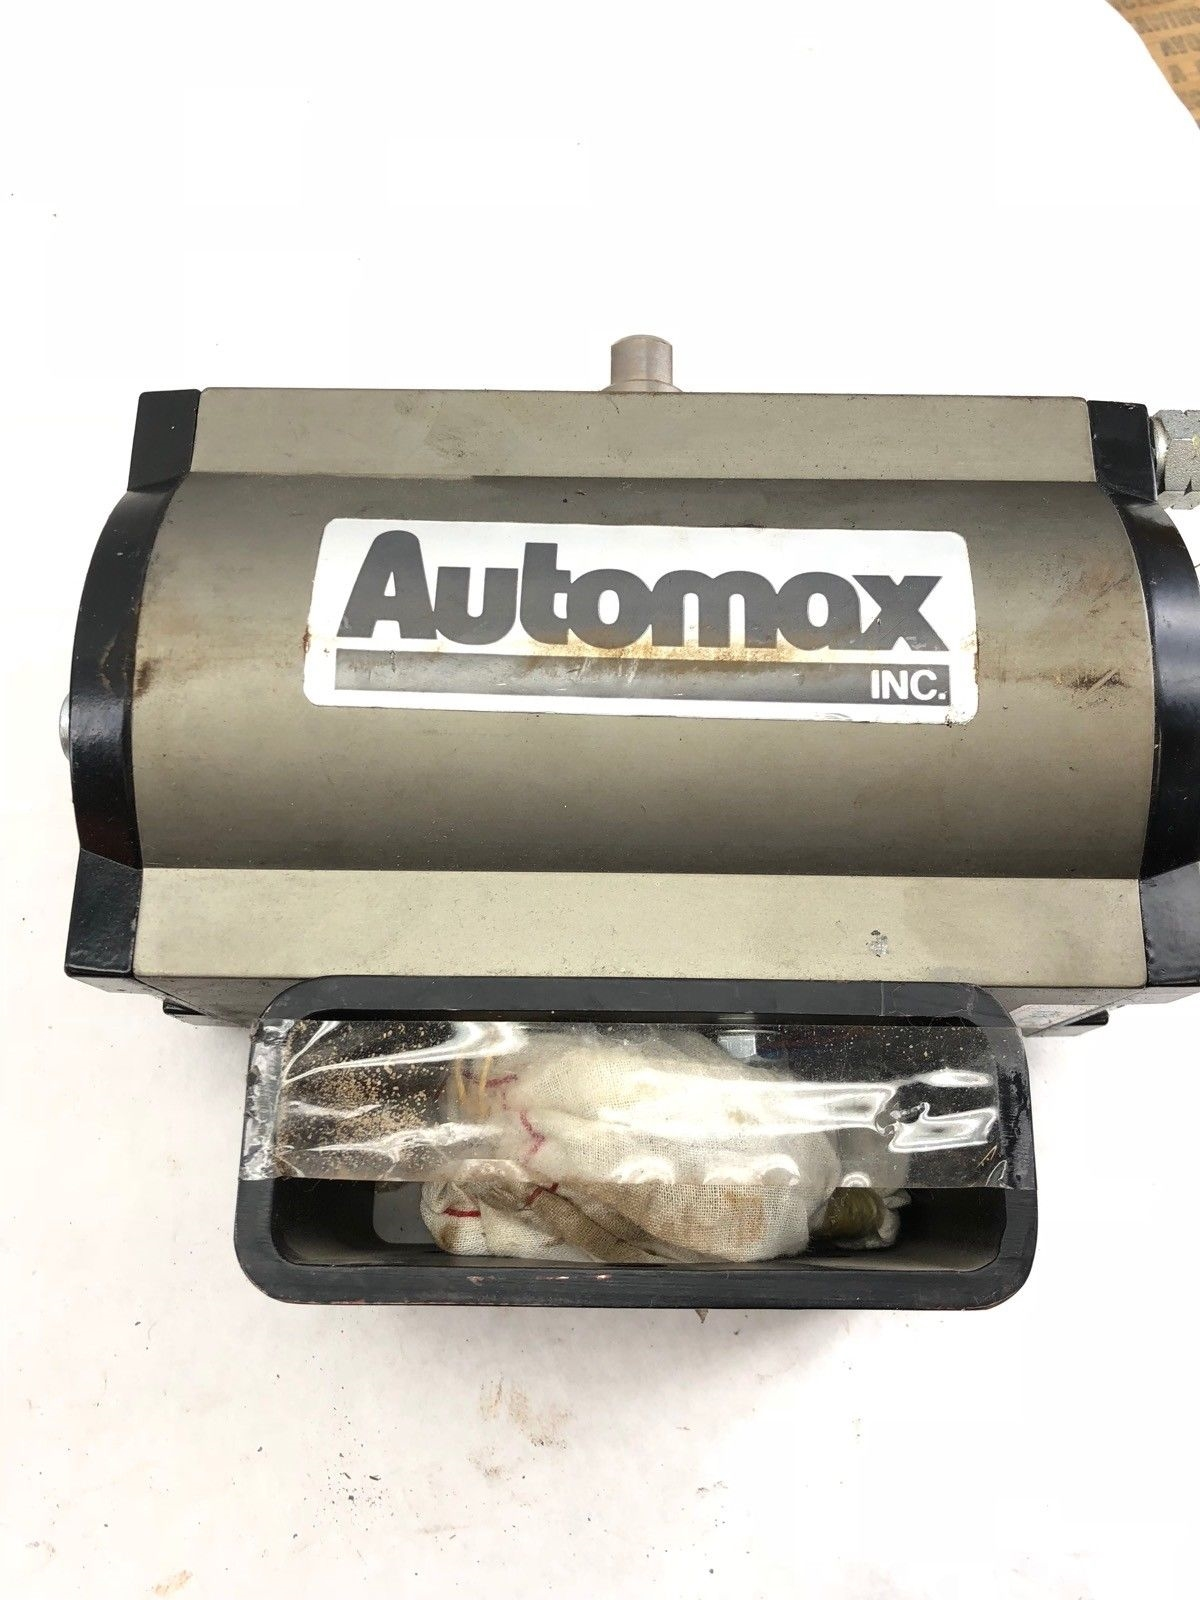 USED AUTOMAX A100DA PNEUMATIC ACTUATOR DOUBLE ACTION, FAST SHIP! 1